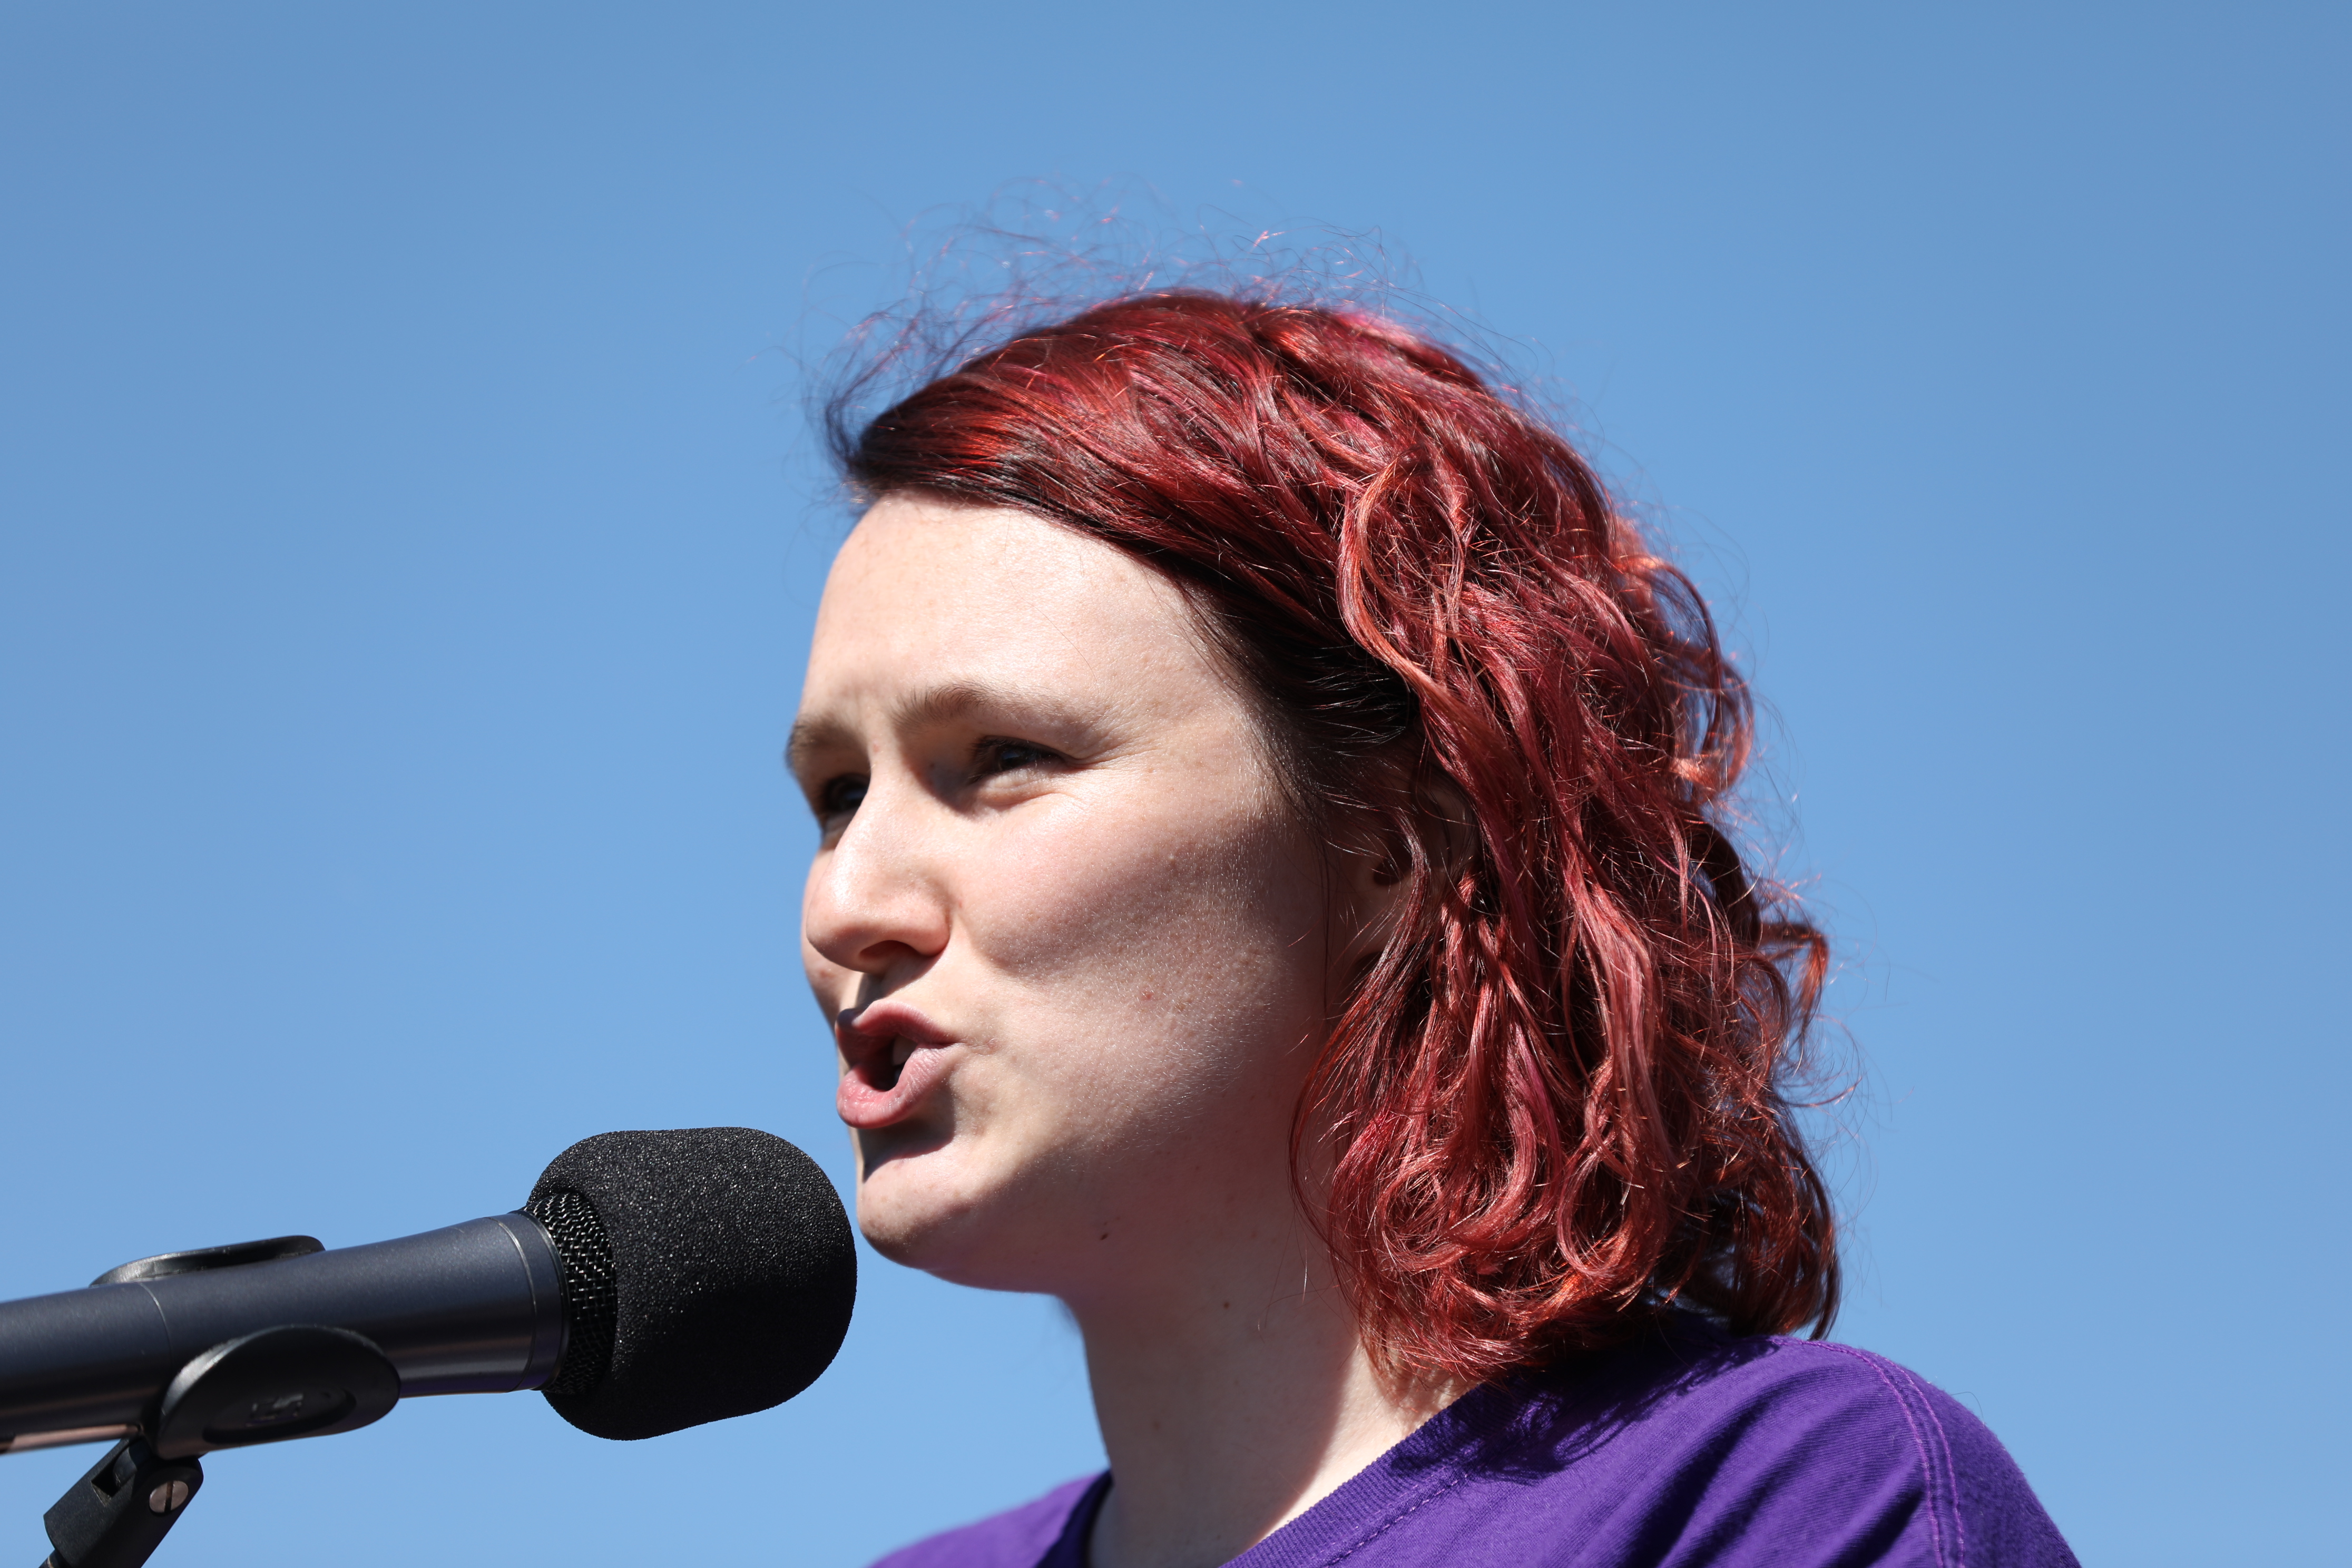 Saxon Mullins speaks at the March 4 Justice protest in Canberra on March 15.